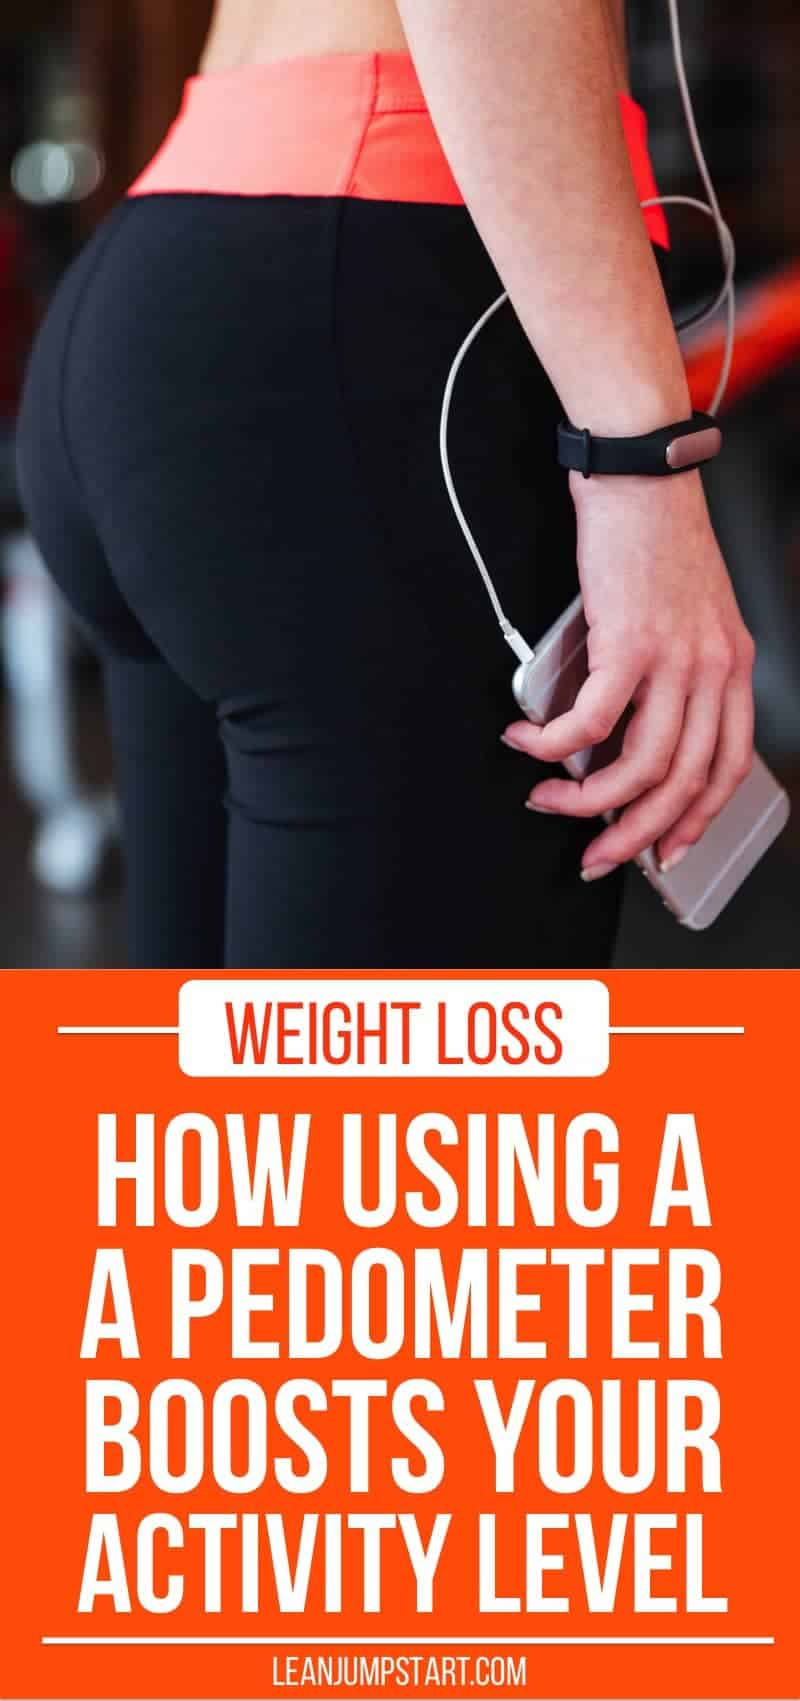 how using a pedometer boosts activity level and weight loss